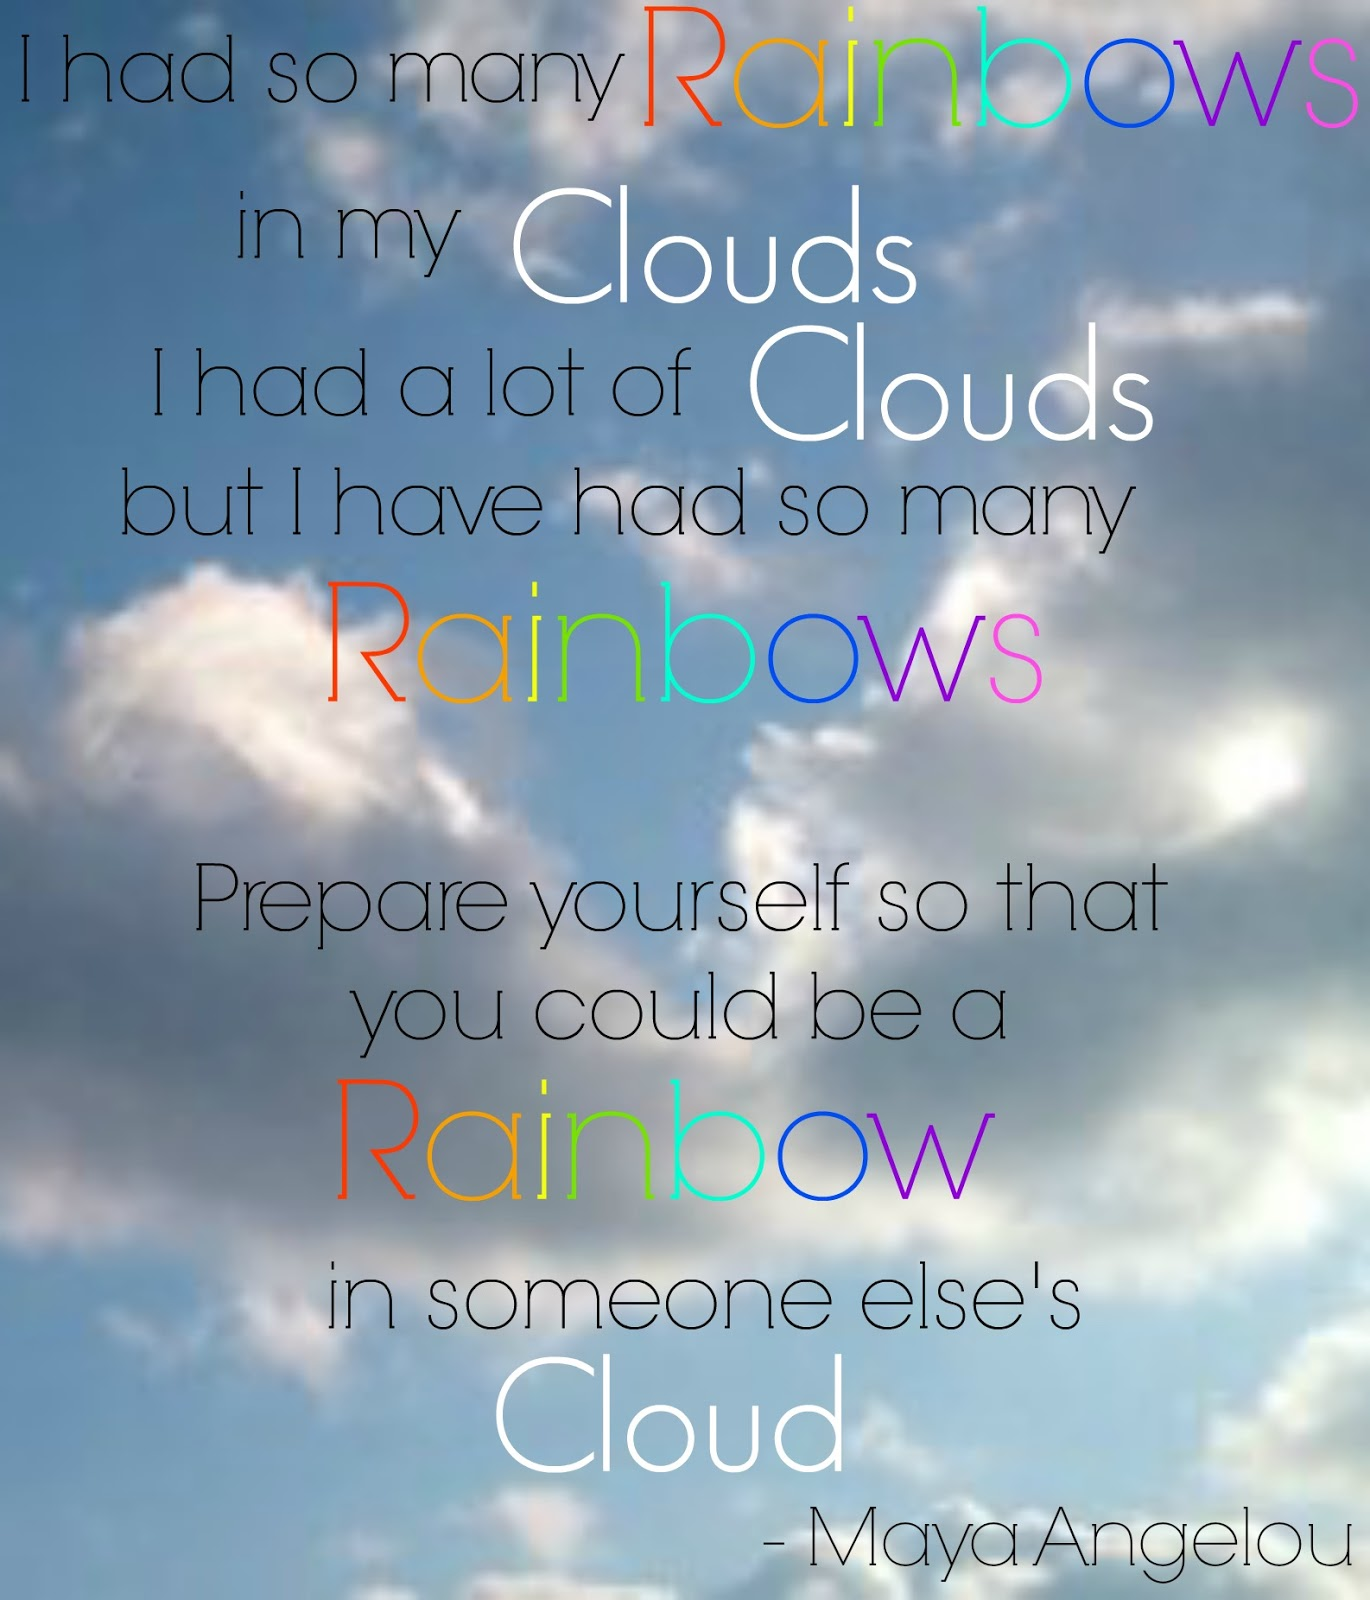 Cloud Quotes Impressive Rainbow Quotes And Sayings  Suri's First Birthday  Pinterest . 2017